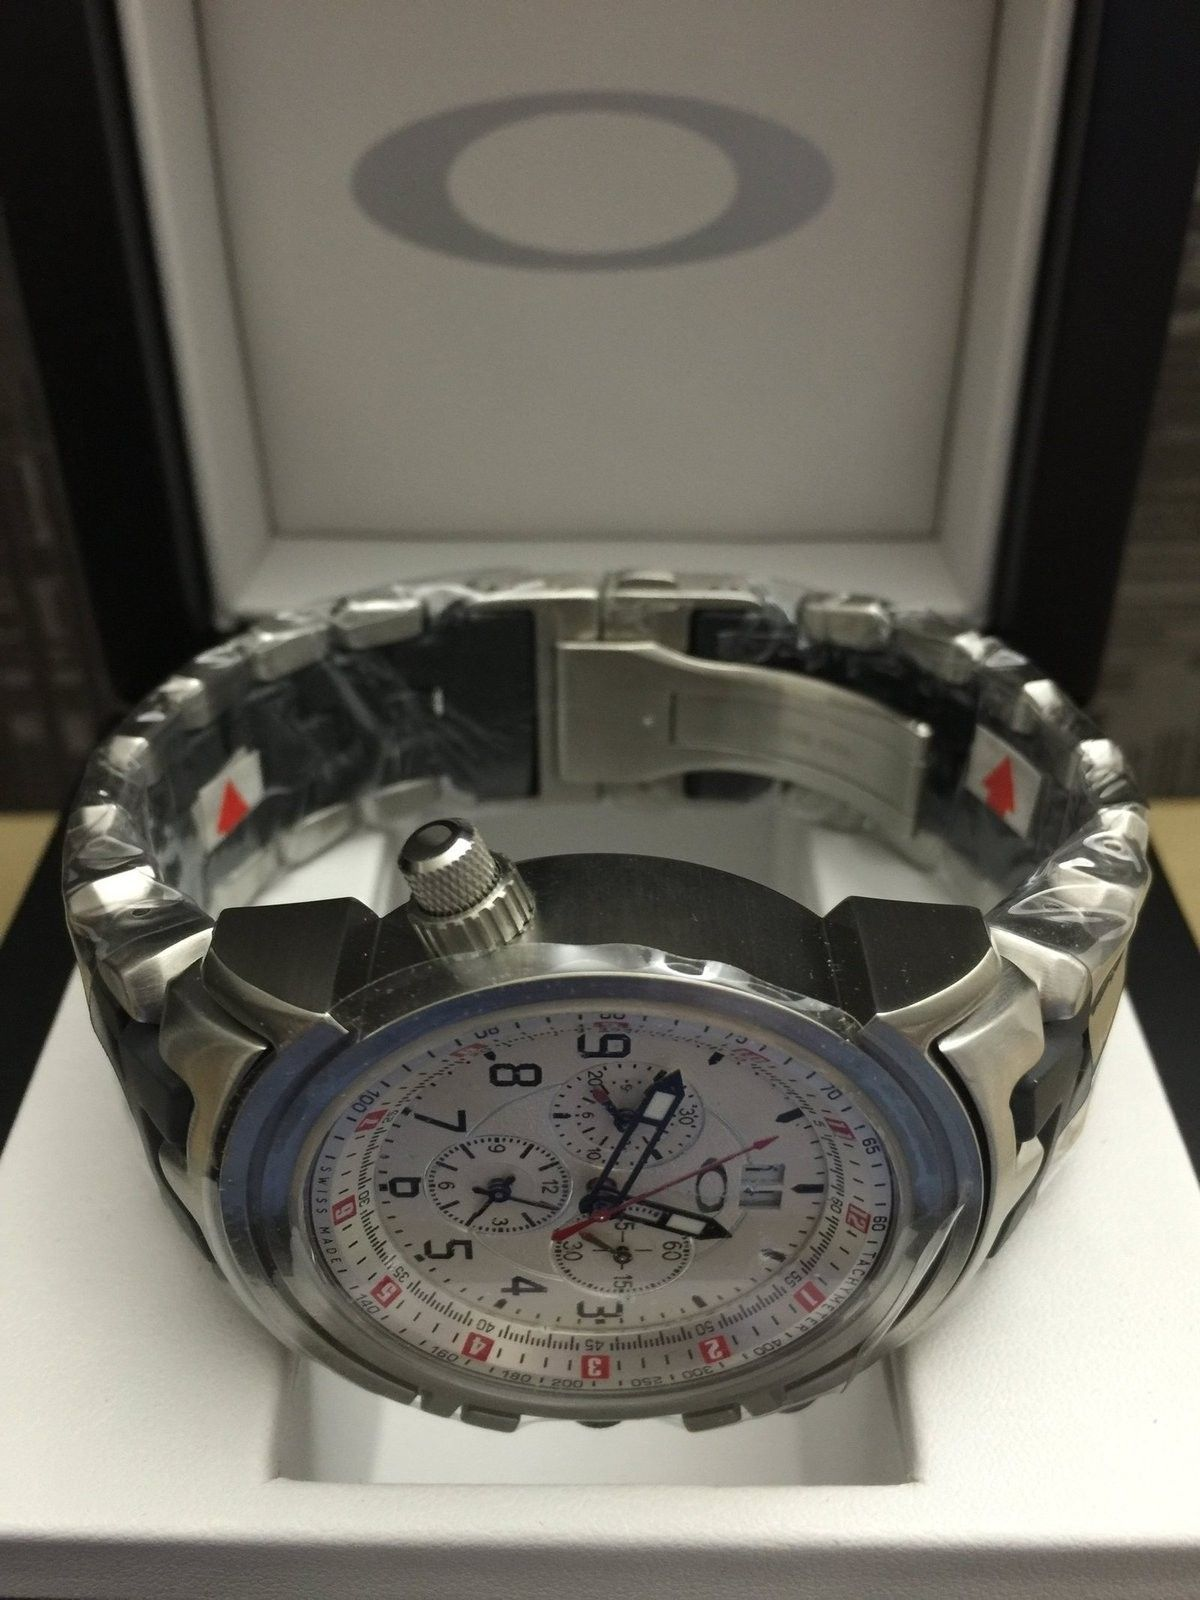 Watches for sale: Brand new 12 Gauge White Dial with Stainless Steel Bracelet (last one) - IMG_4656.JPG